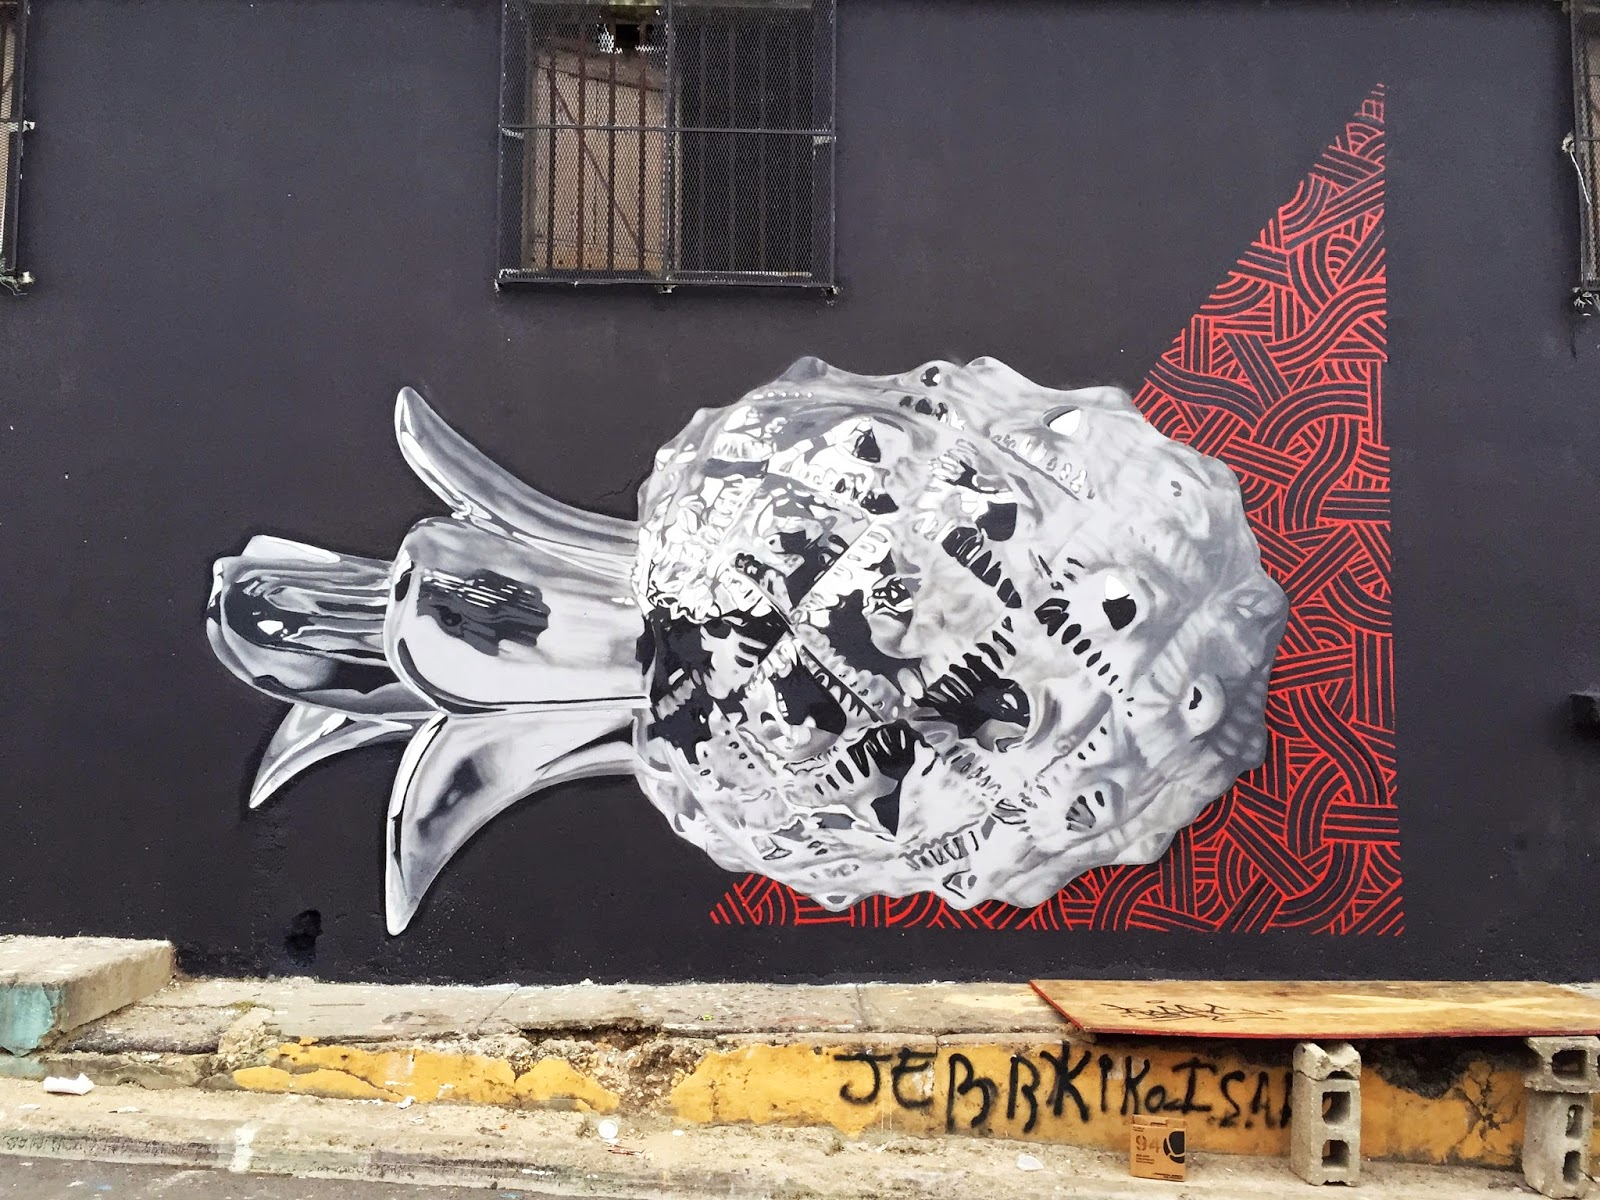 """The """"Hoy Santa Barbara"""" Street Art Festival is kicking off with a bang in Dominican Republic with an epic new piece from the one and only Bikismo."""